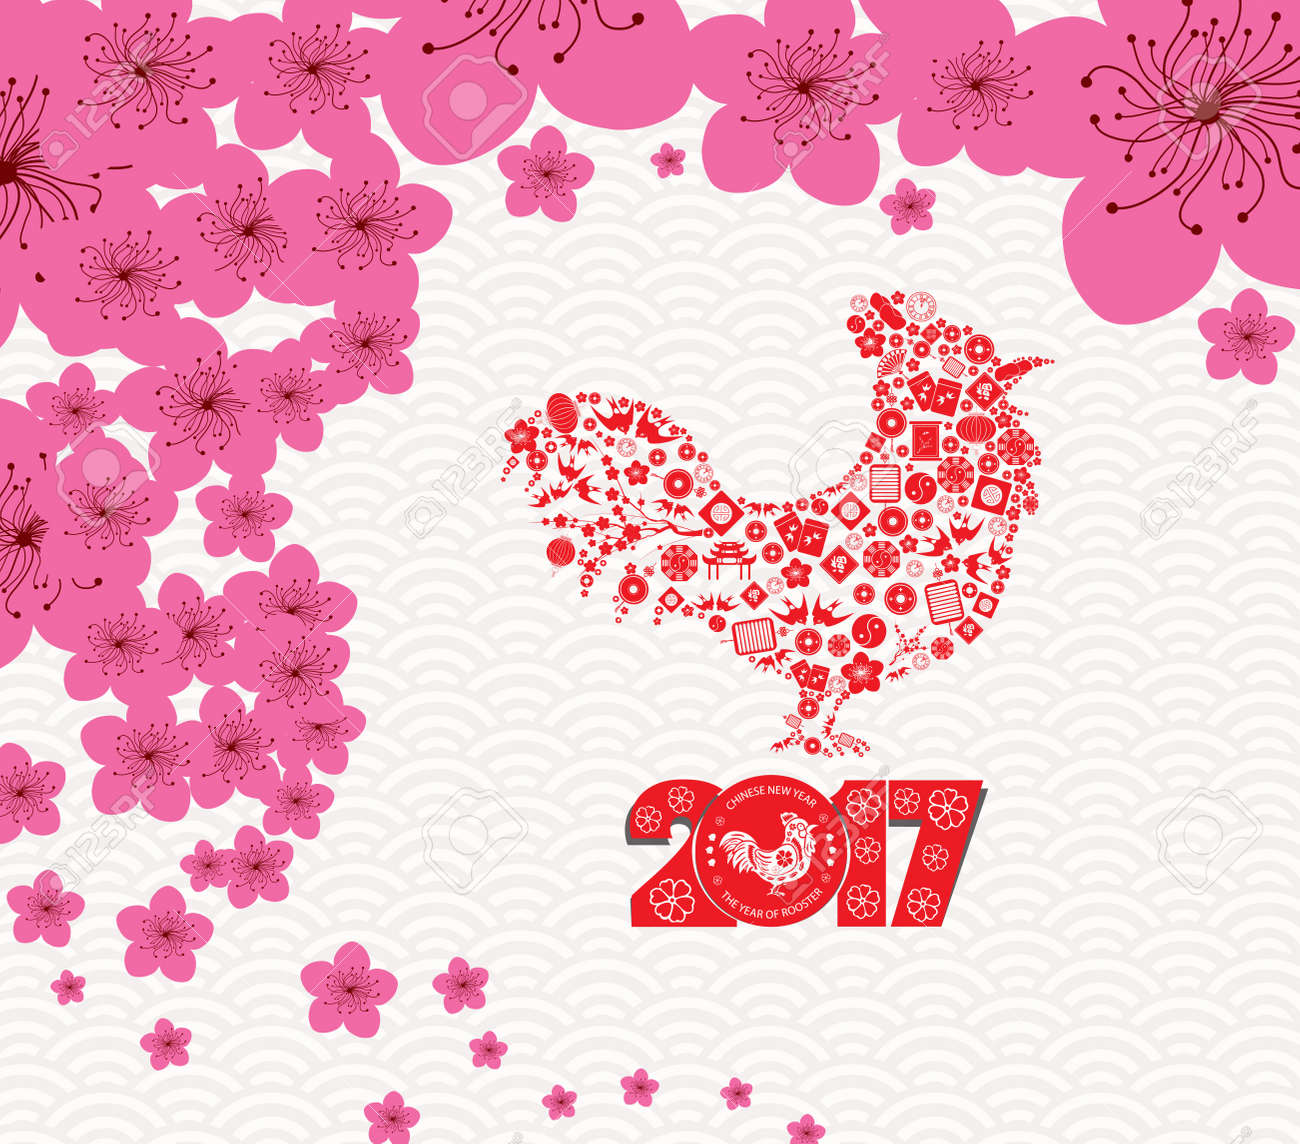 https://i0.wp.com/previews.123rf.com/images/acucucu/acucucu1606/acucucu160600343/59162213-Chinese-New-Year-2017-Plum-blossom-and-rooster-background--Stock-Vector.jpg